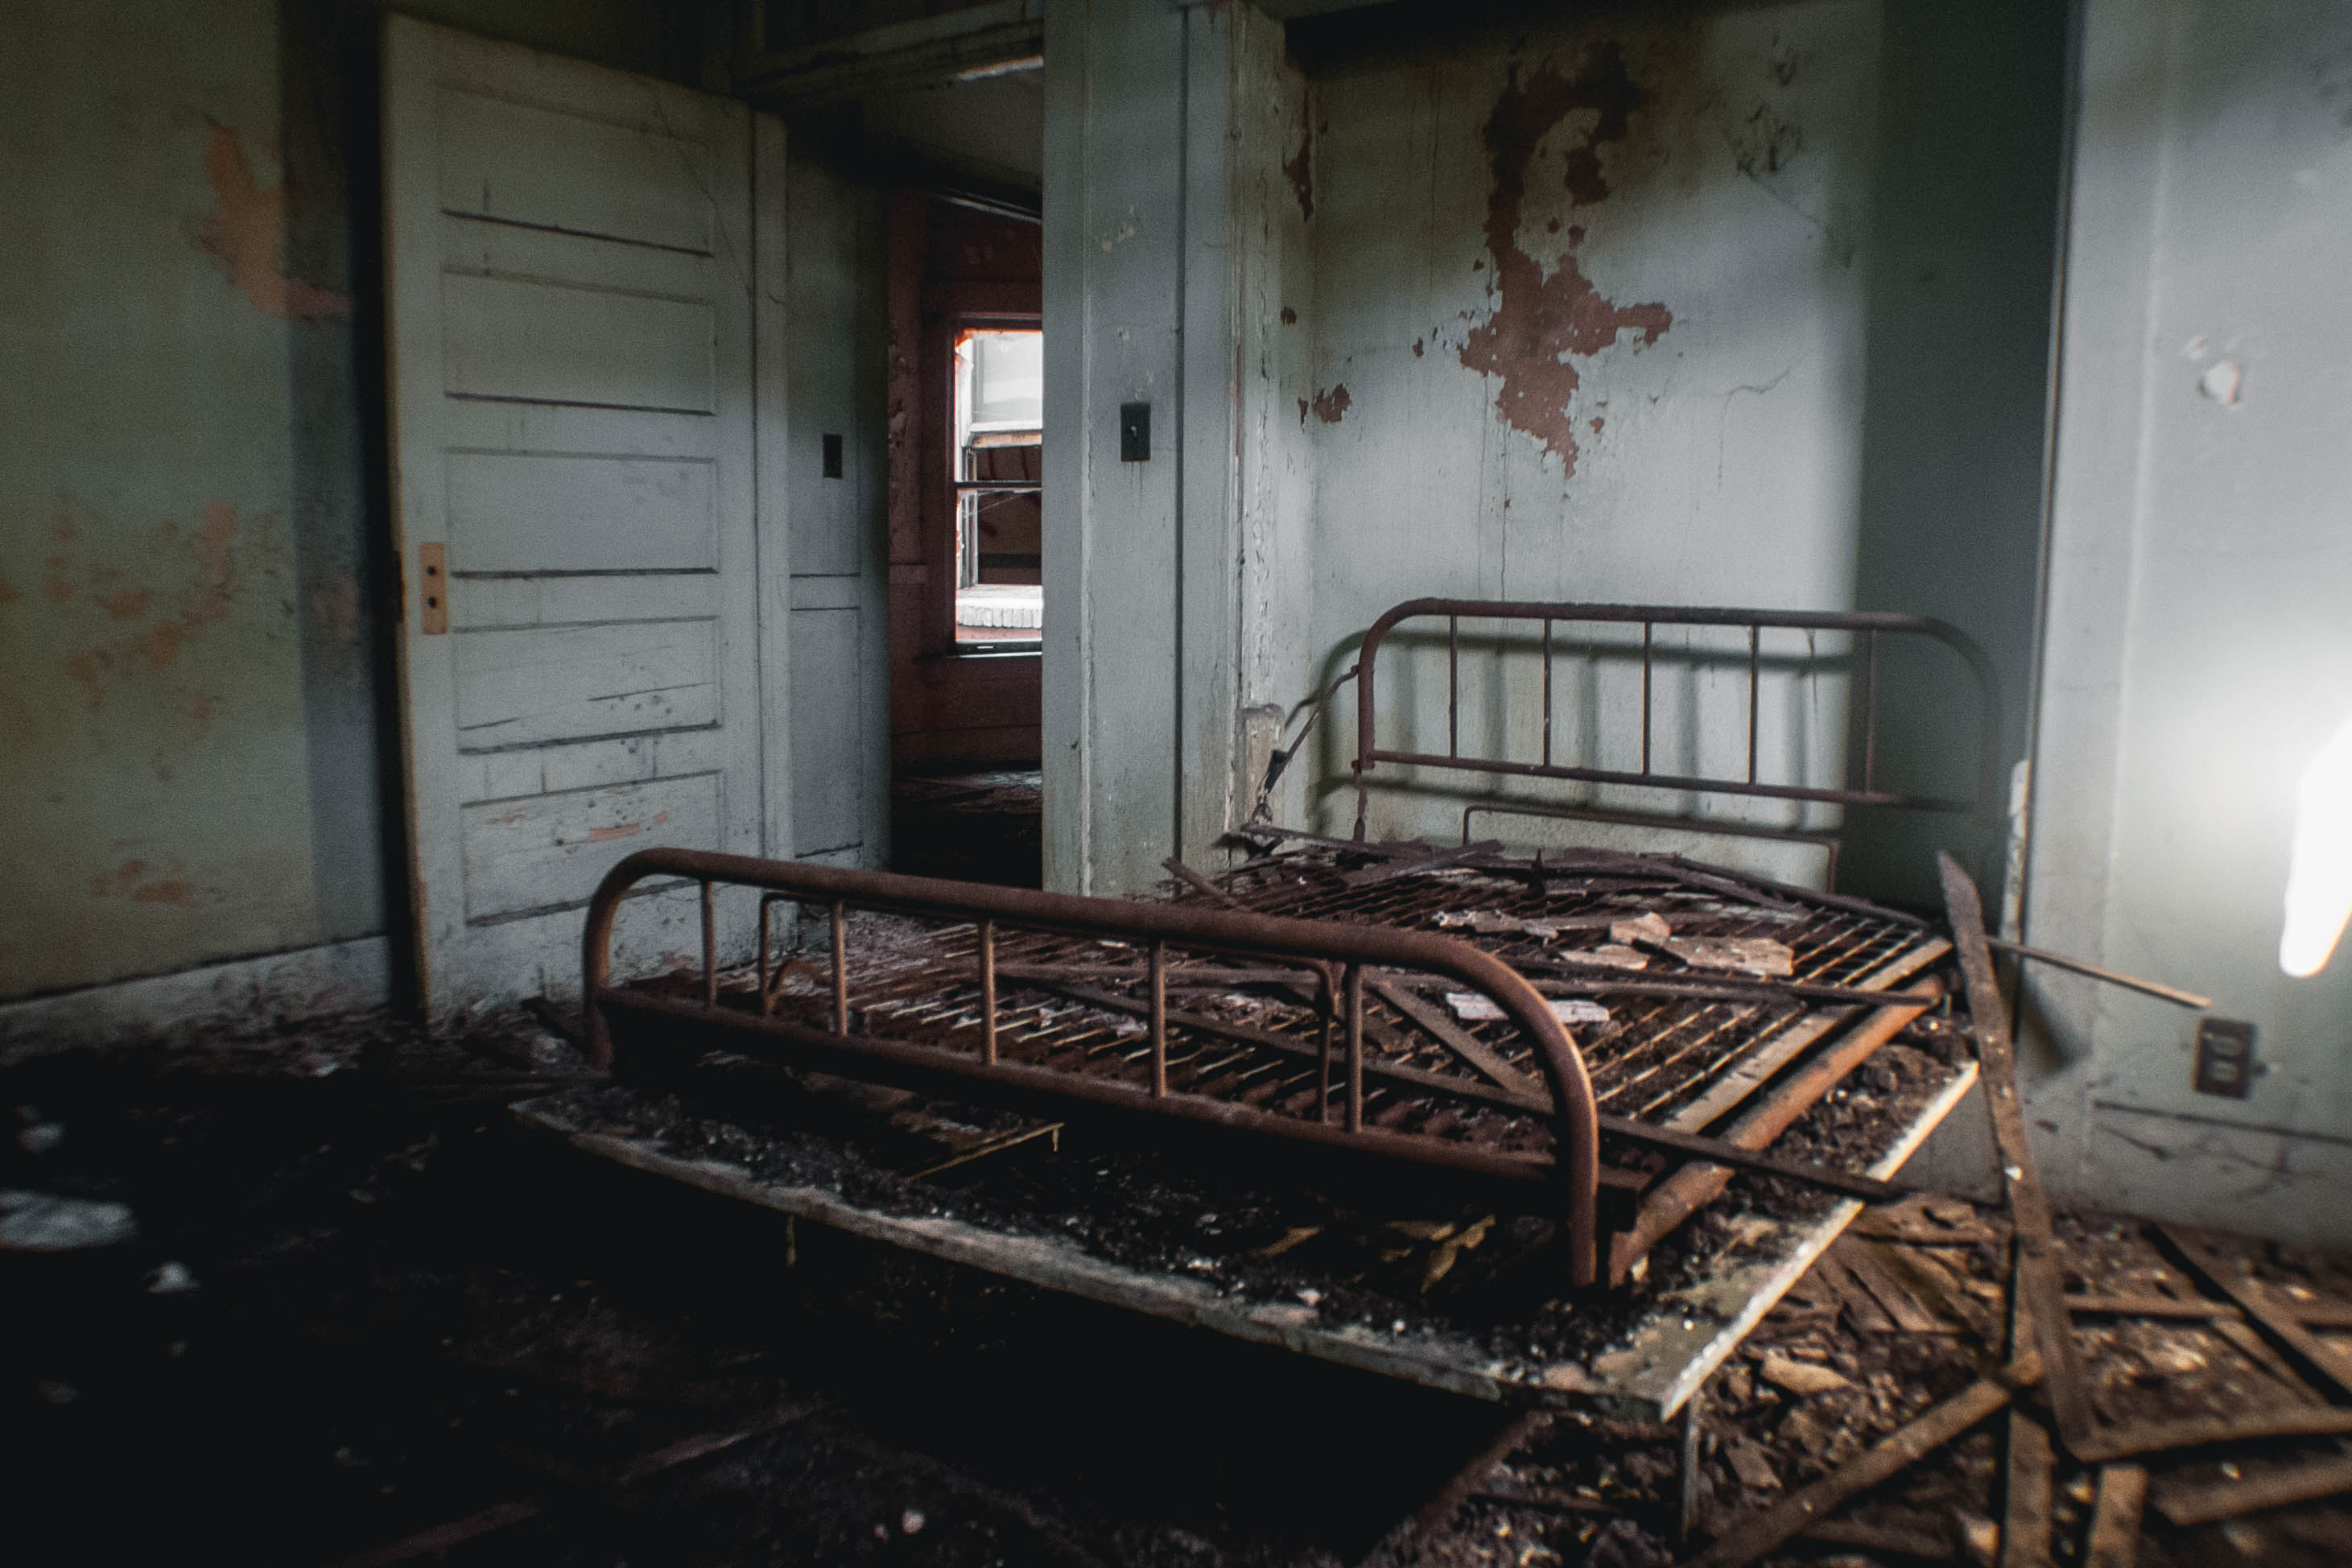 Take a Look Inside Downey's Creepy Abandoned Asylum